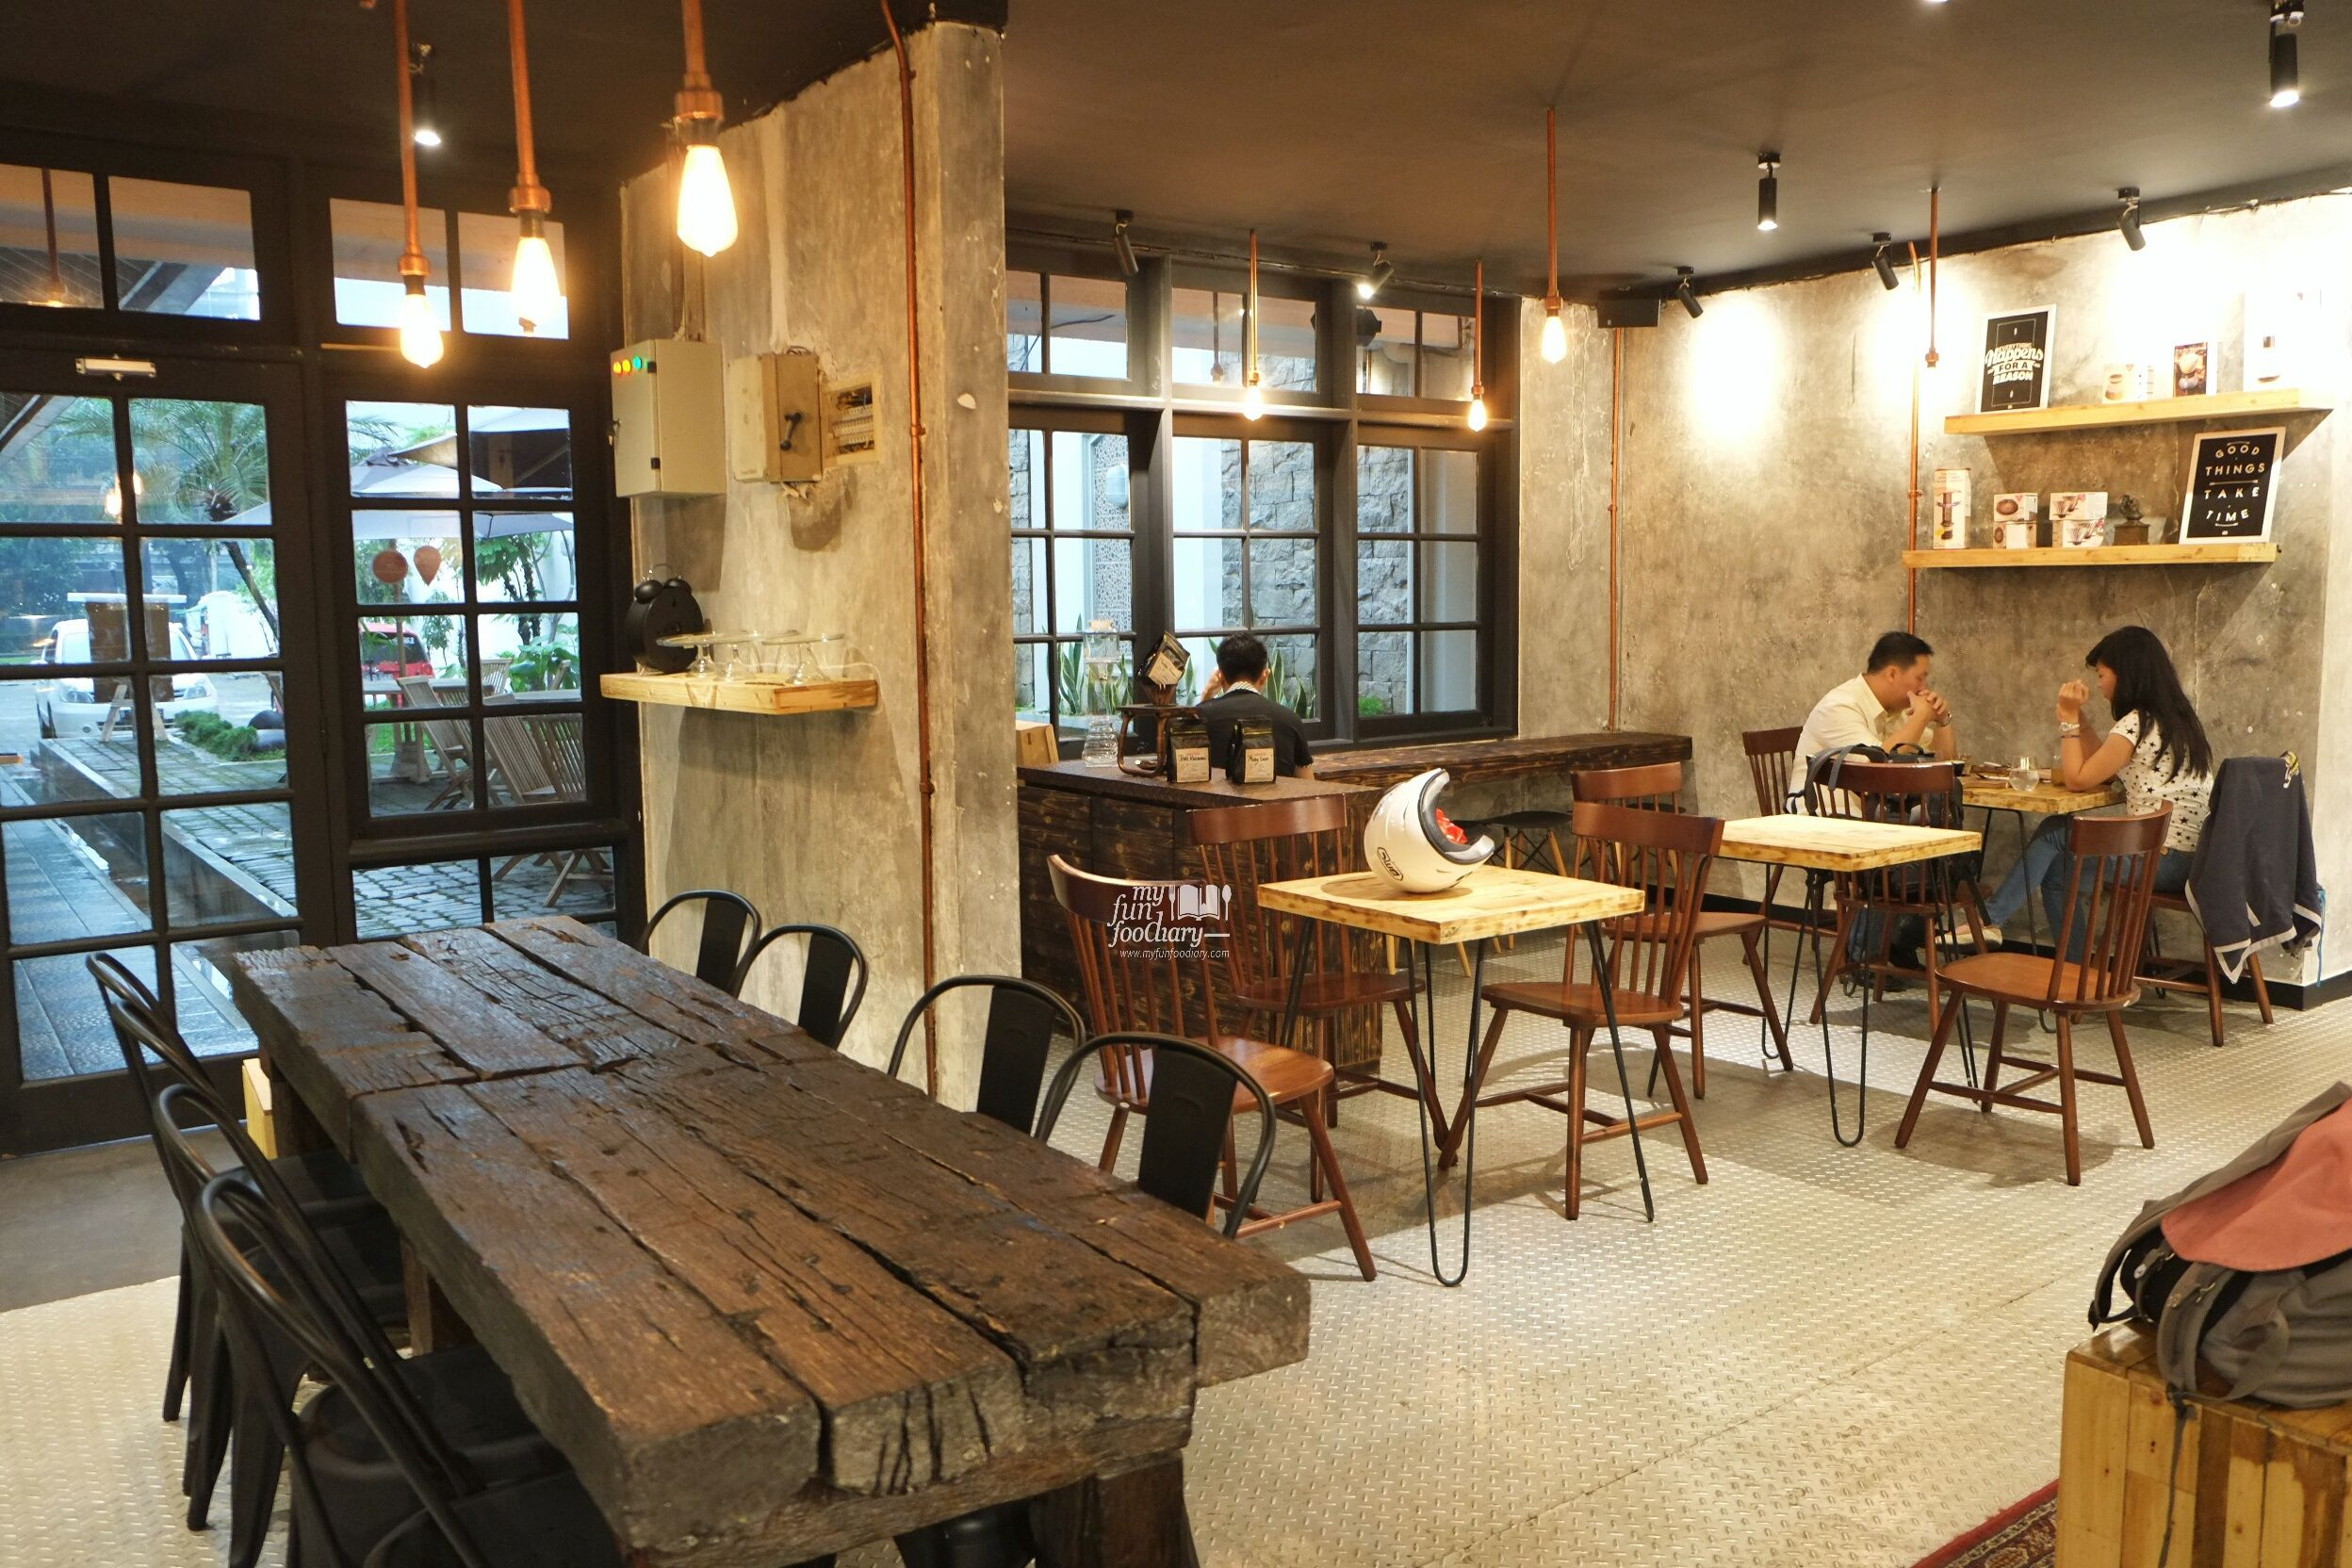 Watt Coffee A New Artisan Coffee Brewer Located In Kwitang Senen Central Jakarta Seems To Attract A Lot Of Attention Among Fellow Coffee Lovers Because I Saw